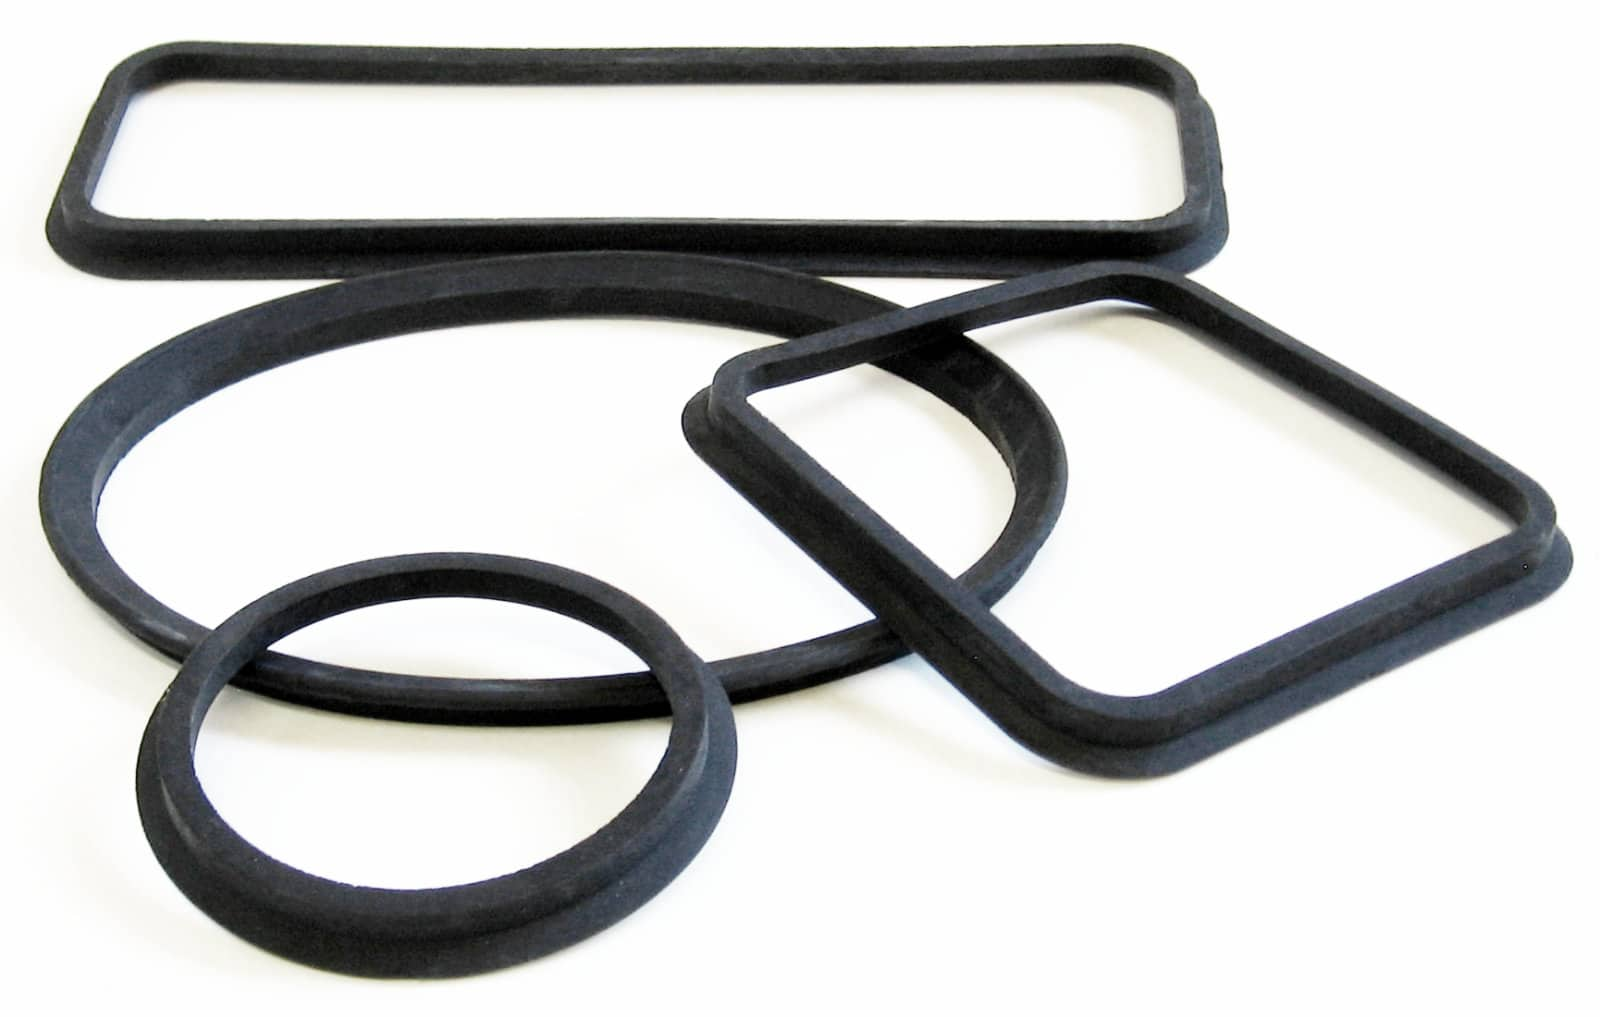 Replacement Vacuum/Suction Cup Seals